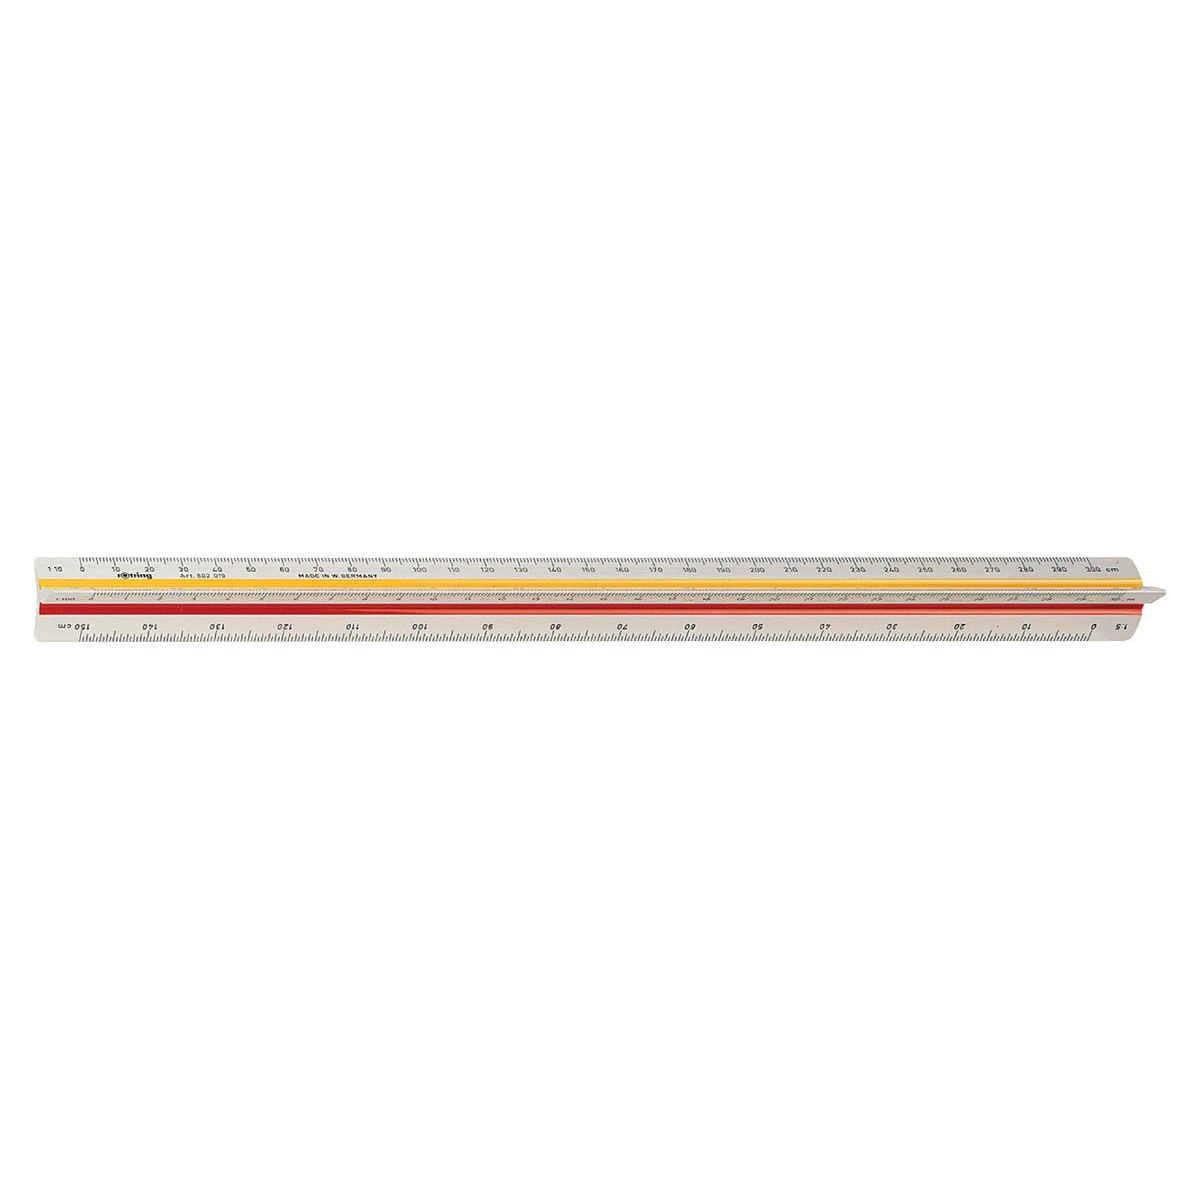 Rotring Ruler Triangular Reduction Scale 1 Architect 1 10